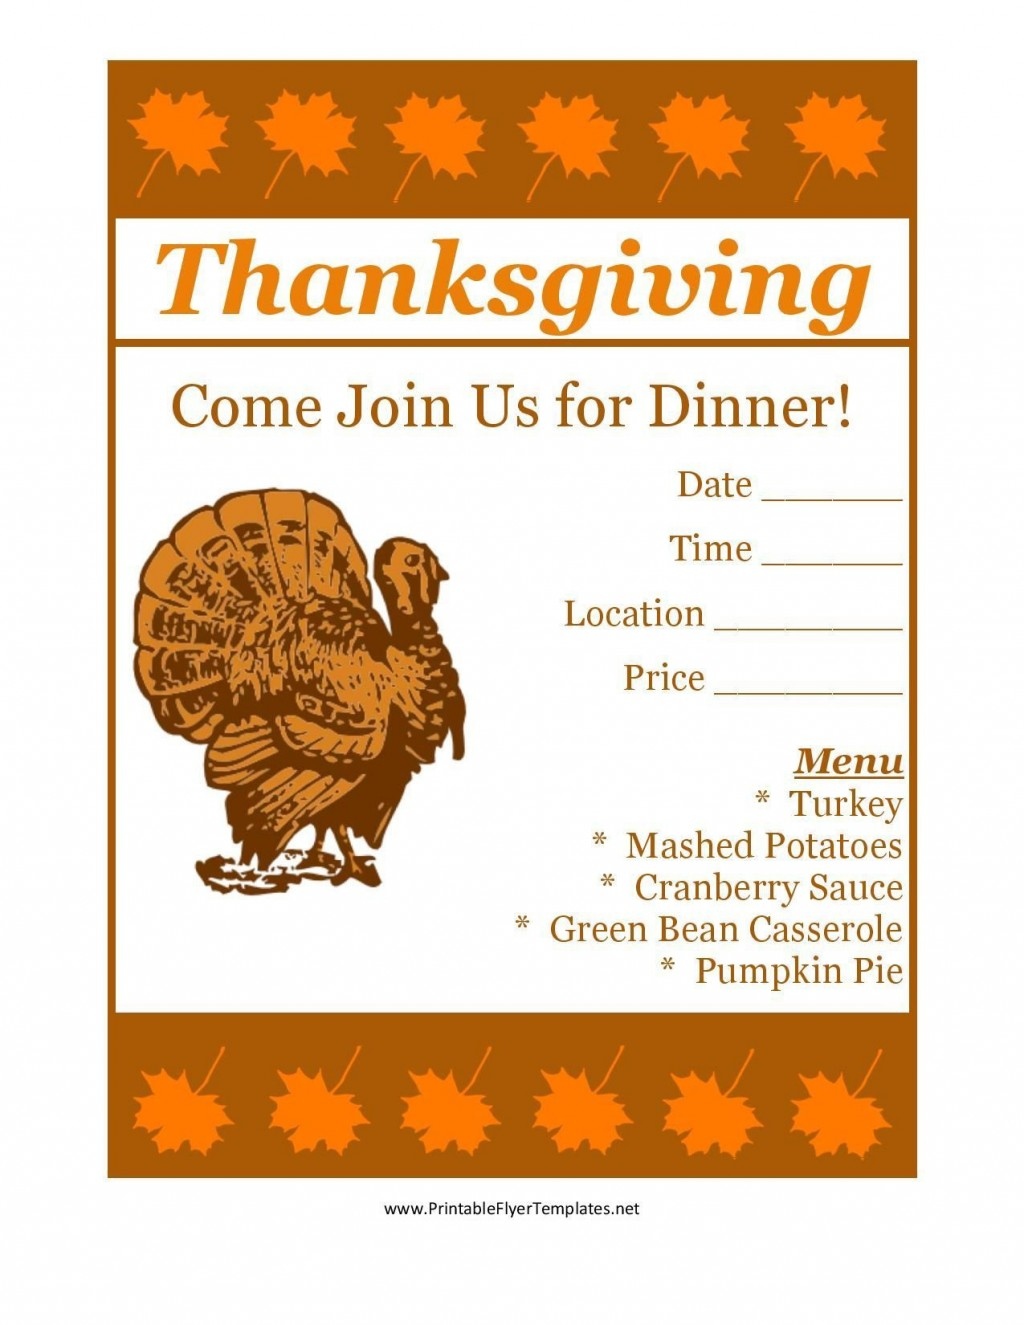 003 Unbelievable Thanksgiving Flyer Template Free Idea  Food Drive PartyLarge